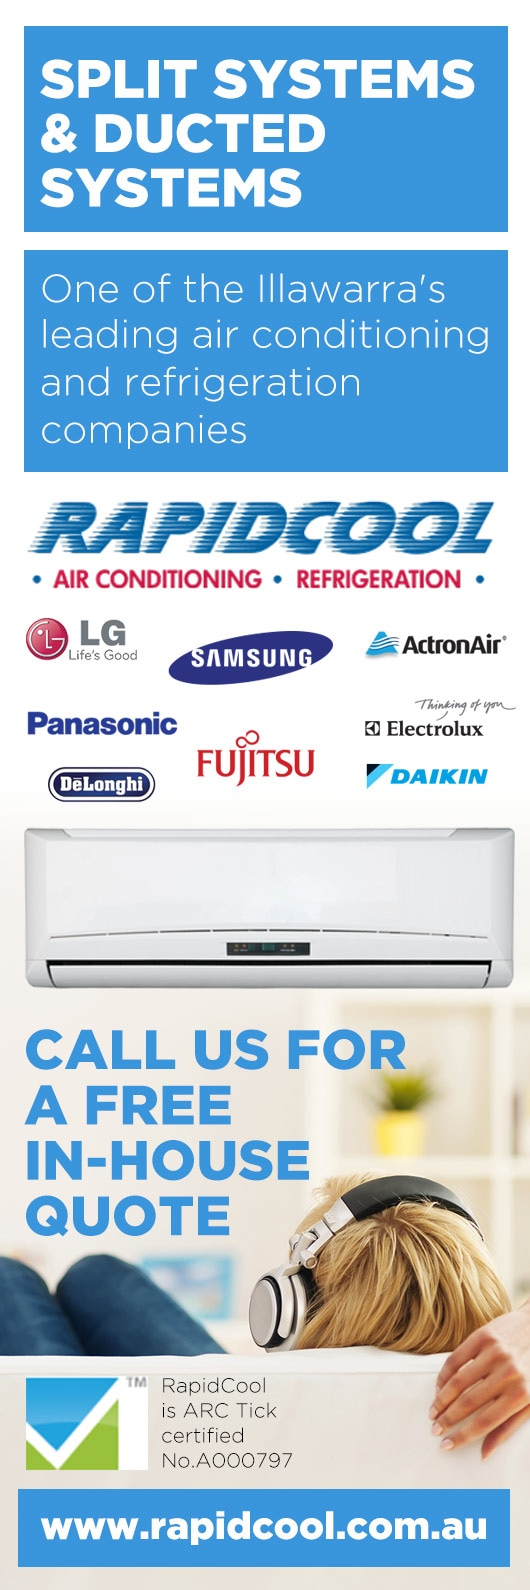 rapidcool air conditioning & electrical pty ltd - air conditioning